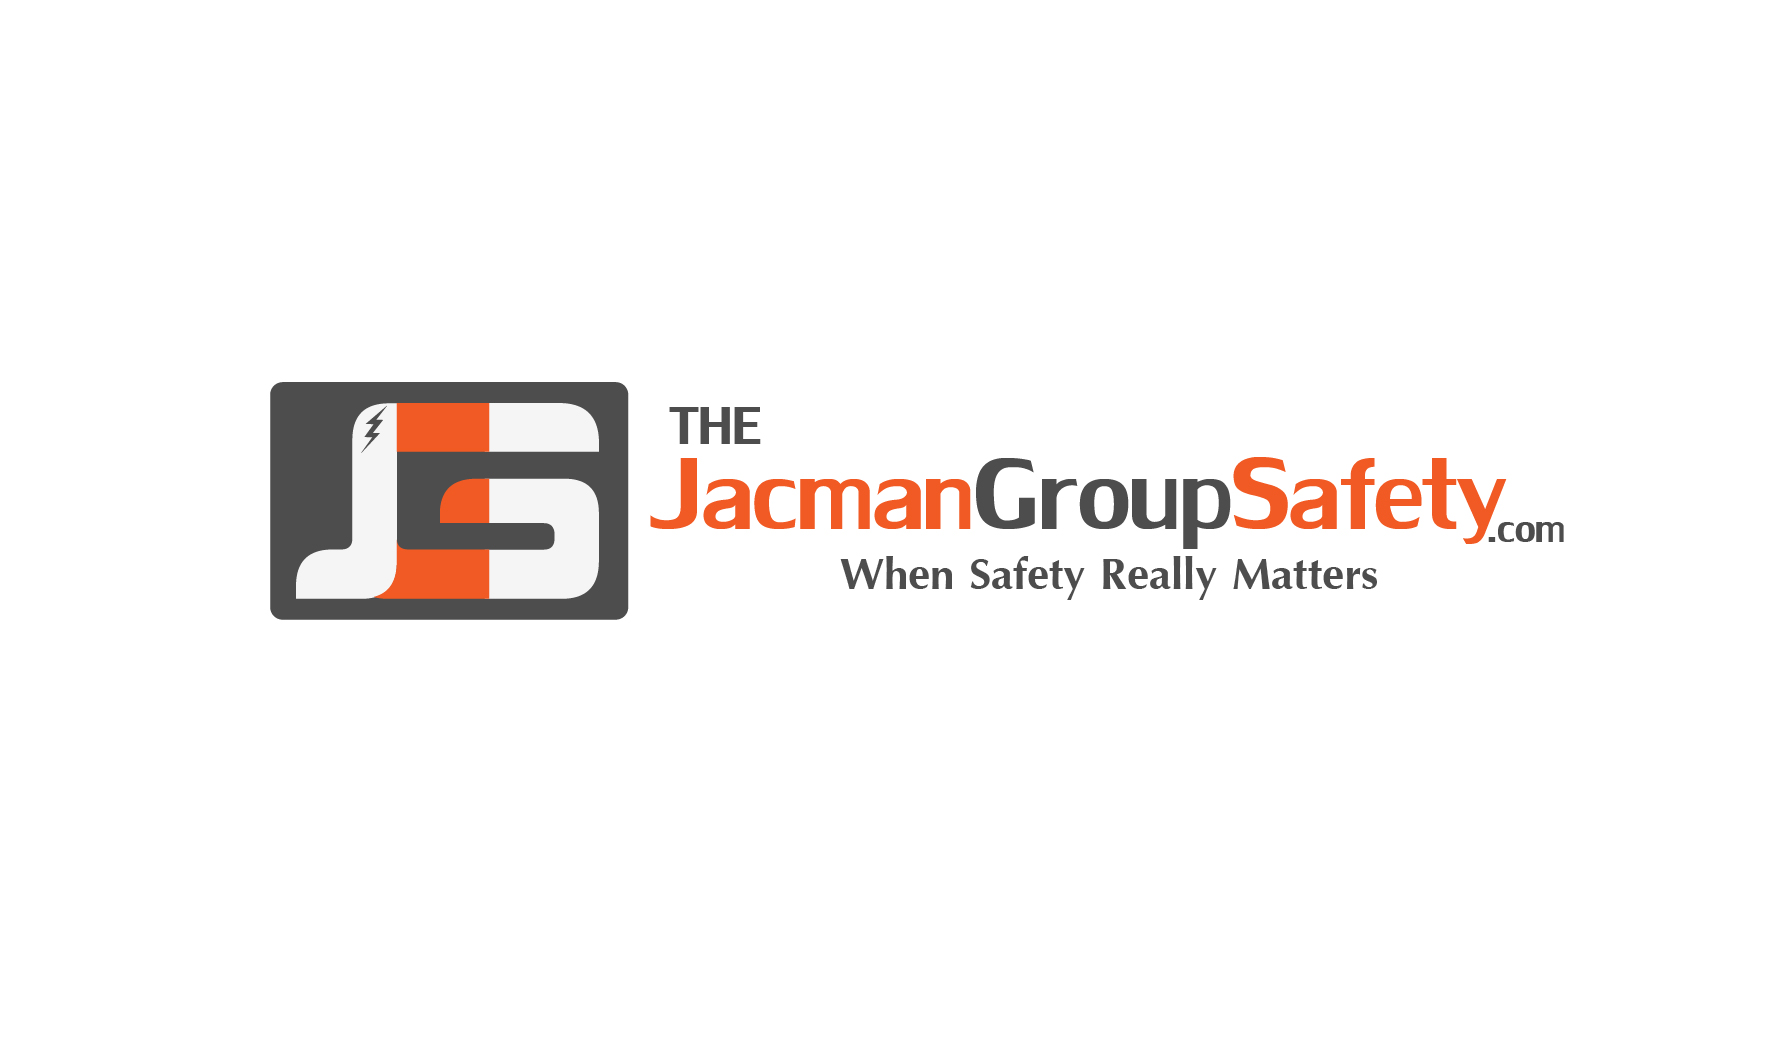 Logo Design by 3draw - Entry No. 90 in the Logo Design Contest The Jacman Group Logo Design.